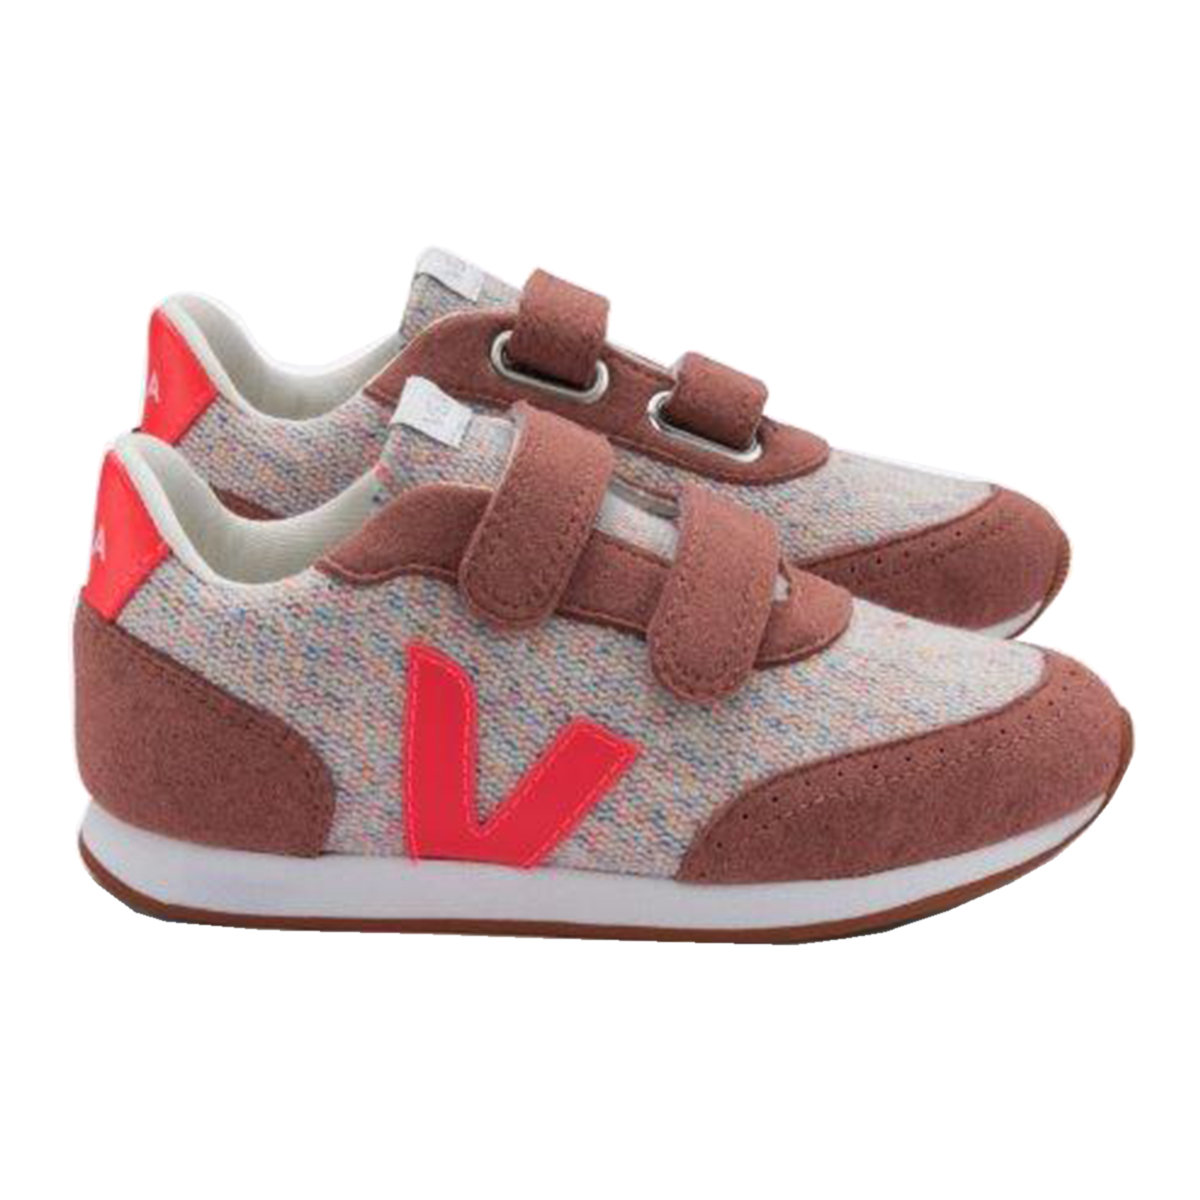 Veja Small Arcade Flannel Cloudy Rose shoe